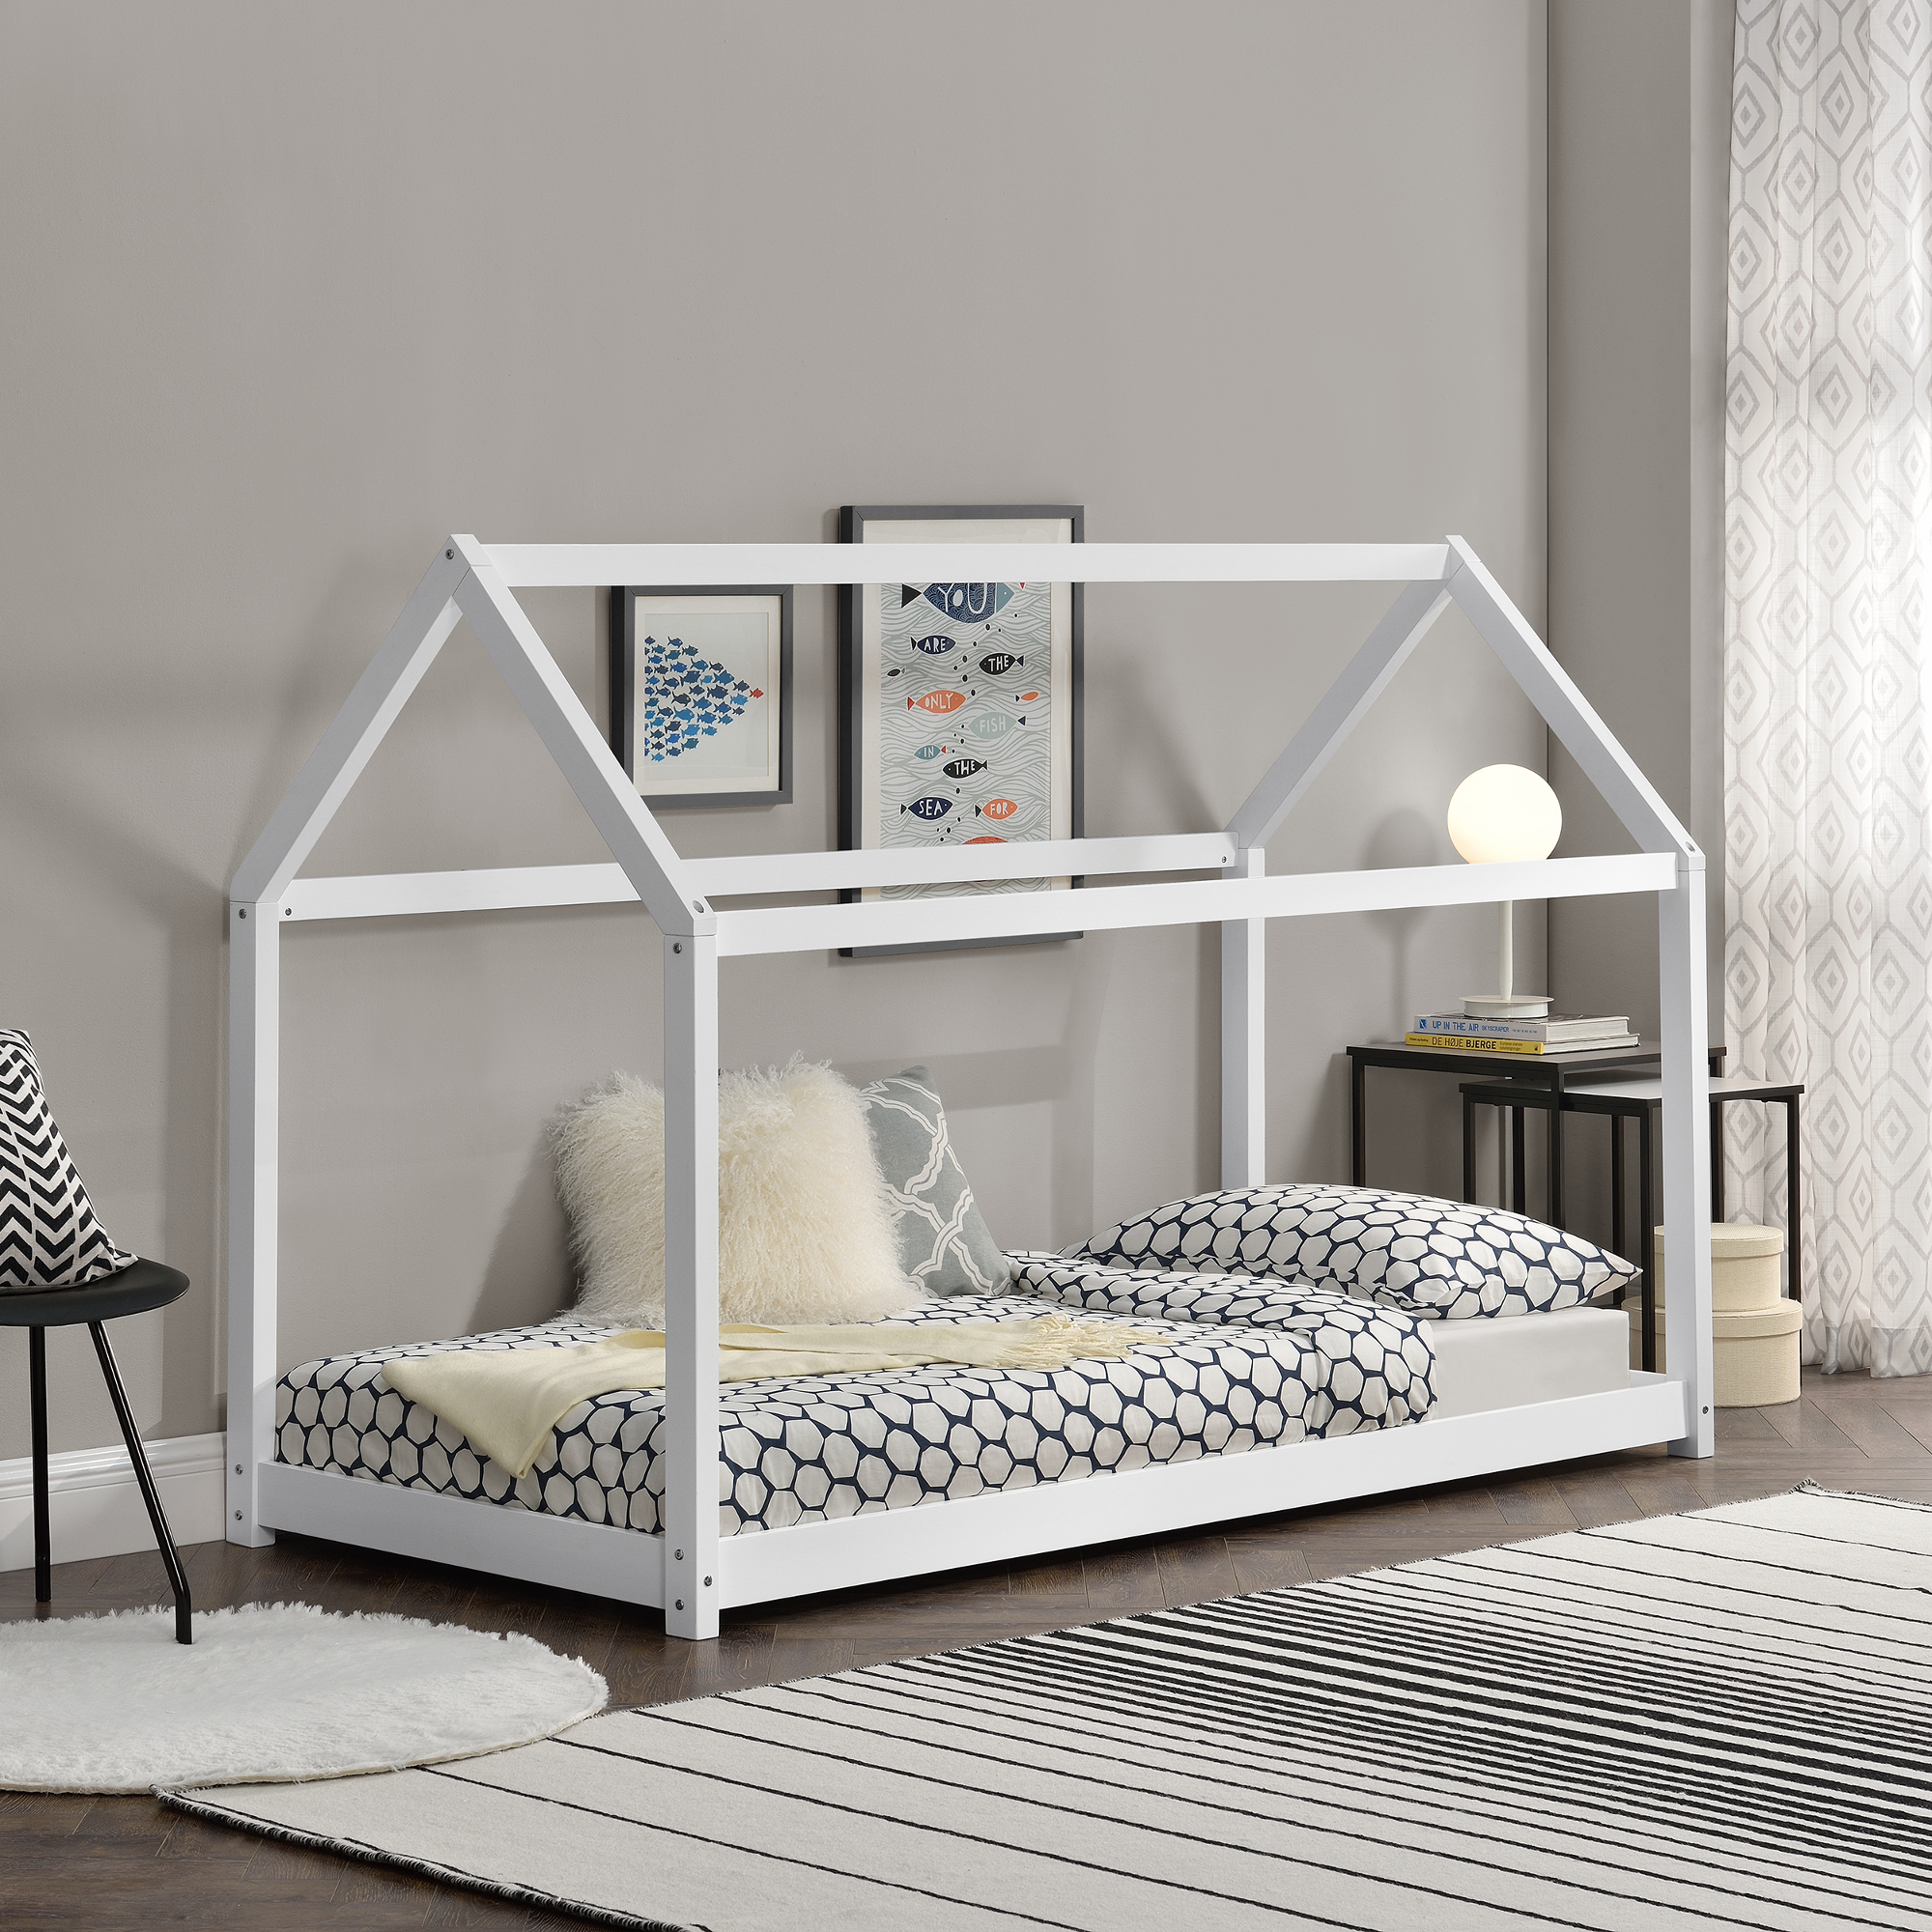 kinderbett 90x200cm haus holz wei bettenhaus hausbett kinder bett ebay. Black Bedroom Furniture Sets. Home Design Ideas